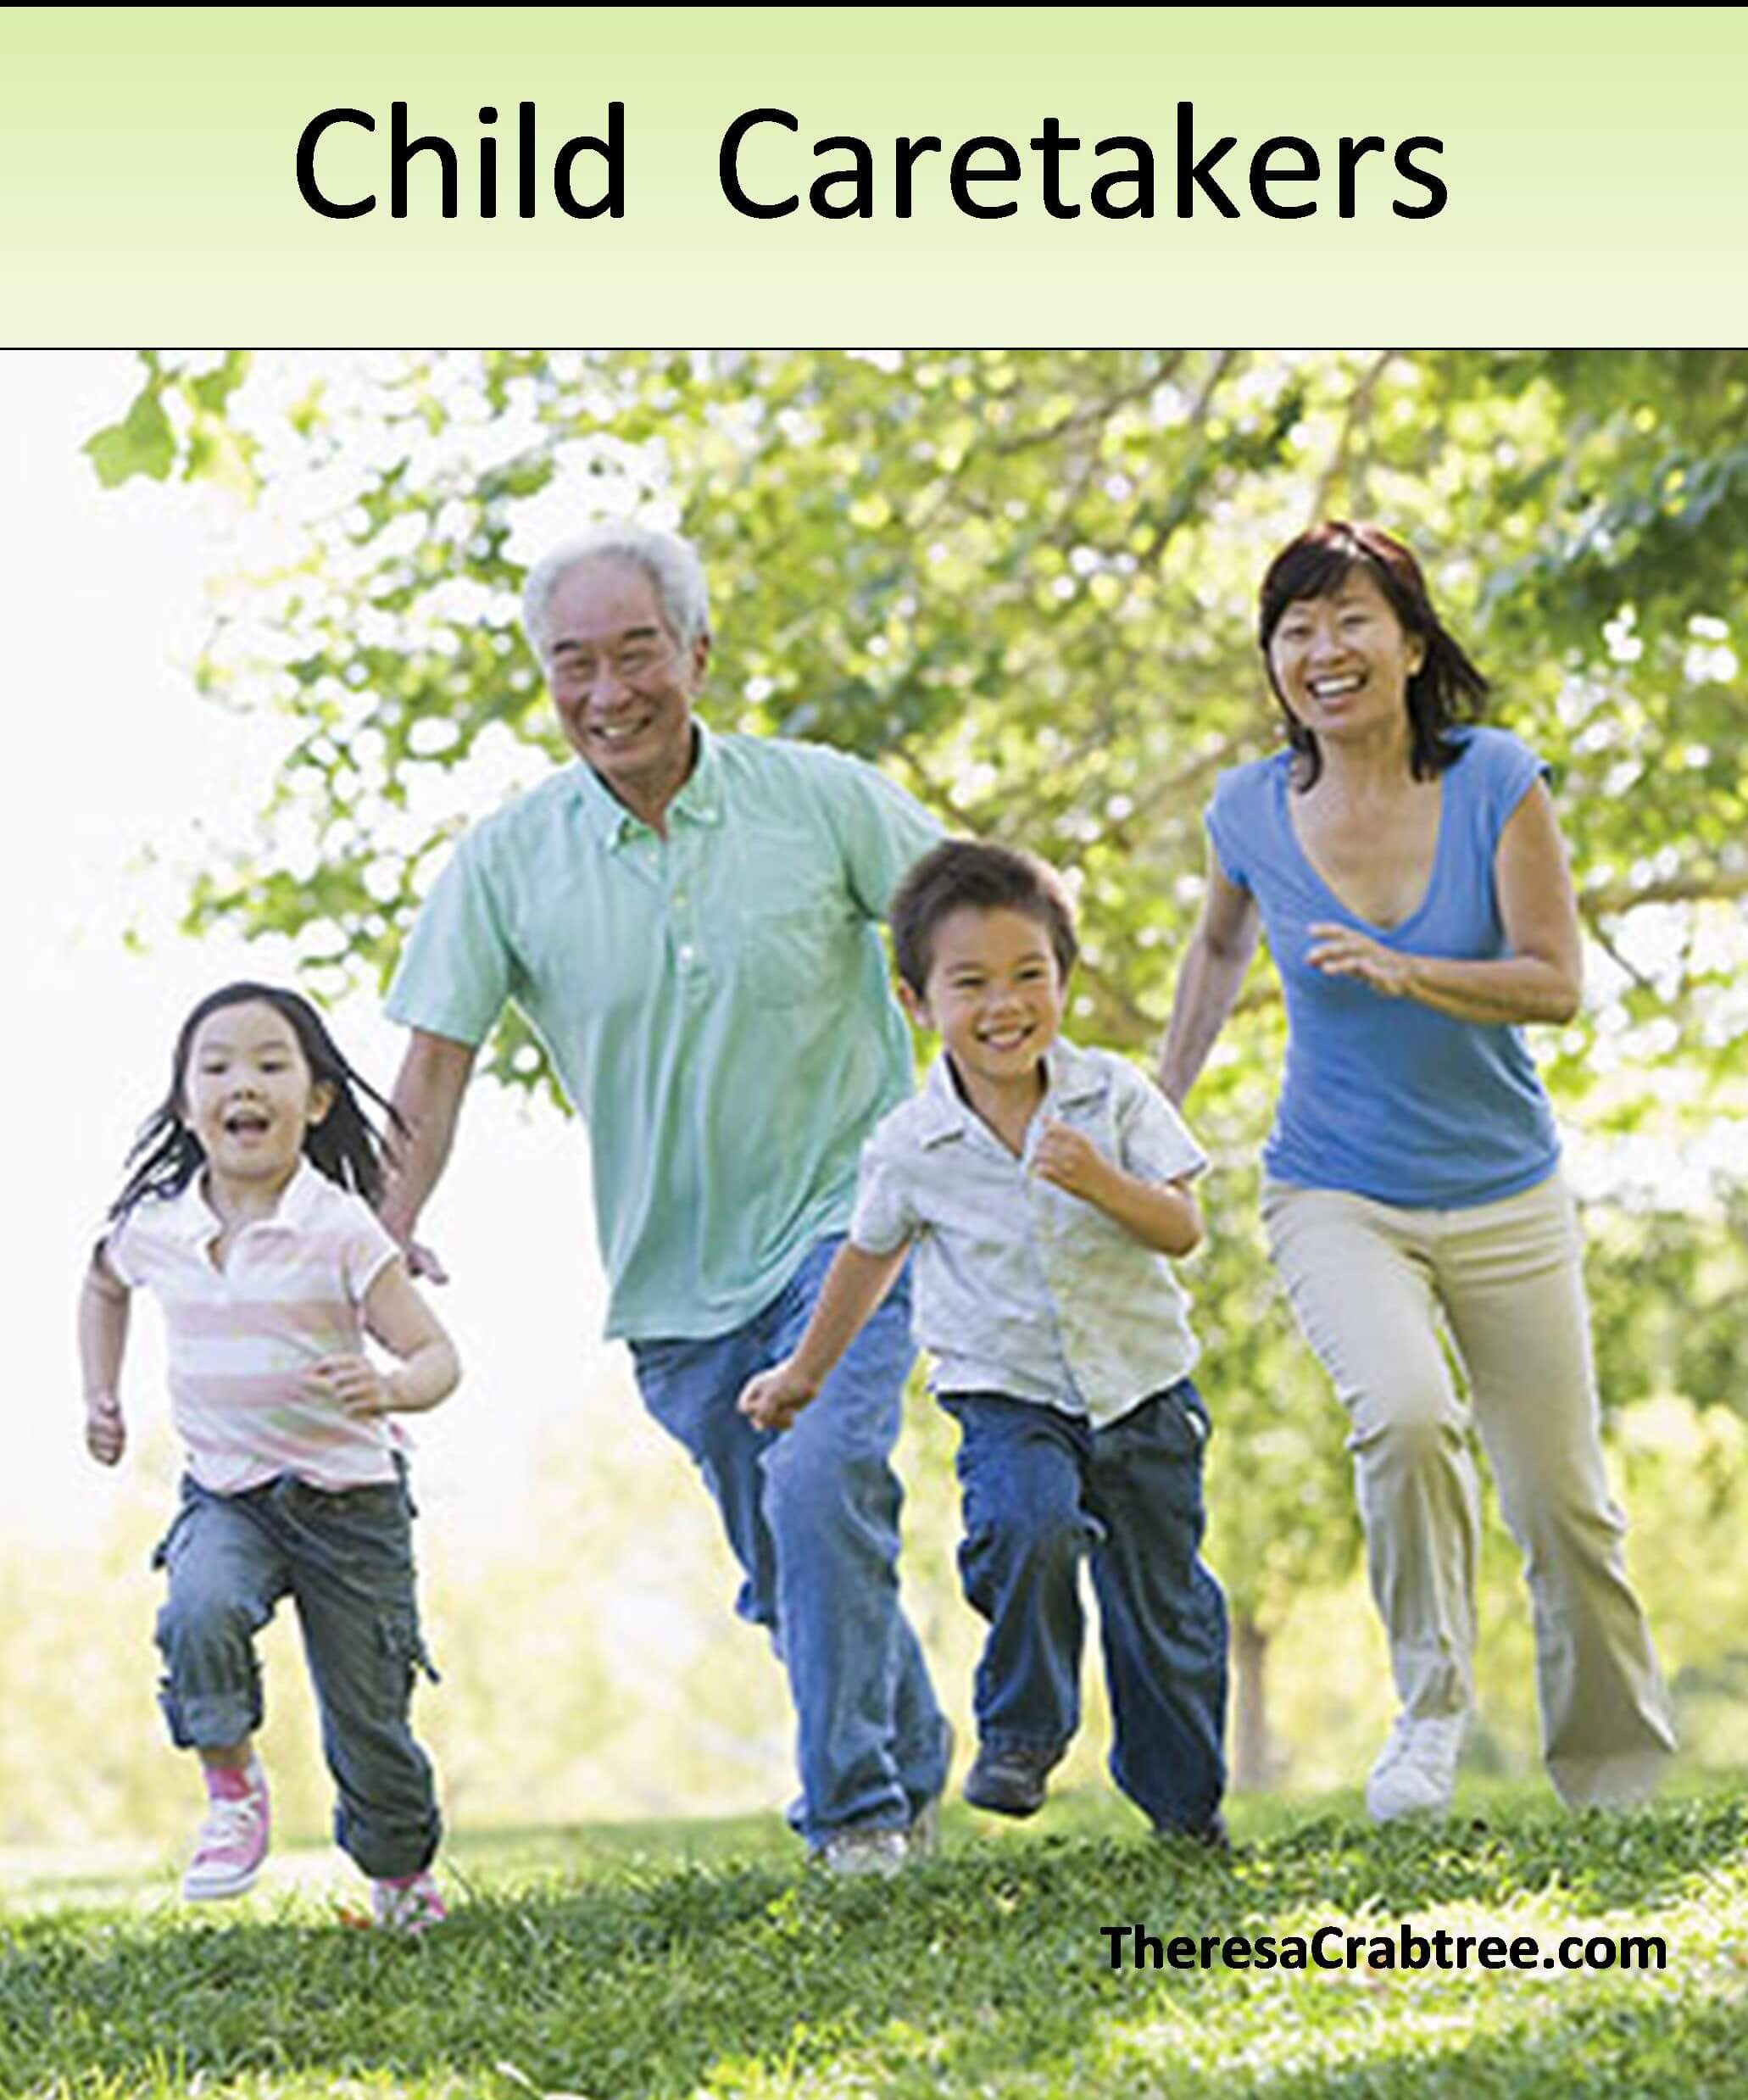 Child Caretakers